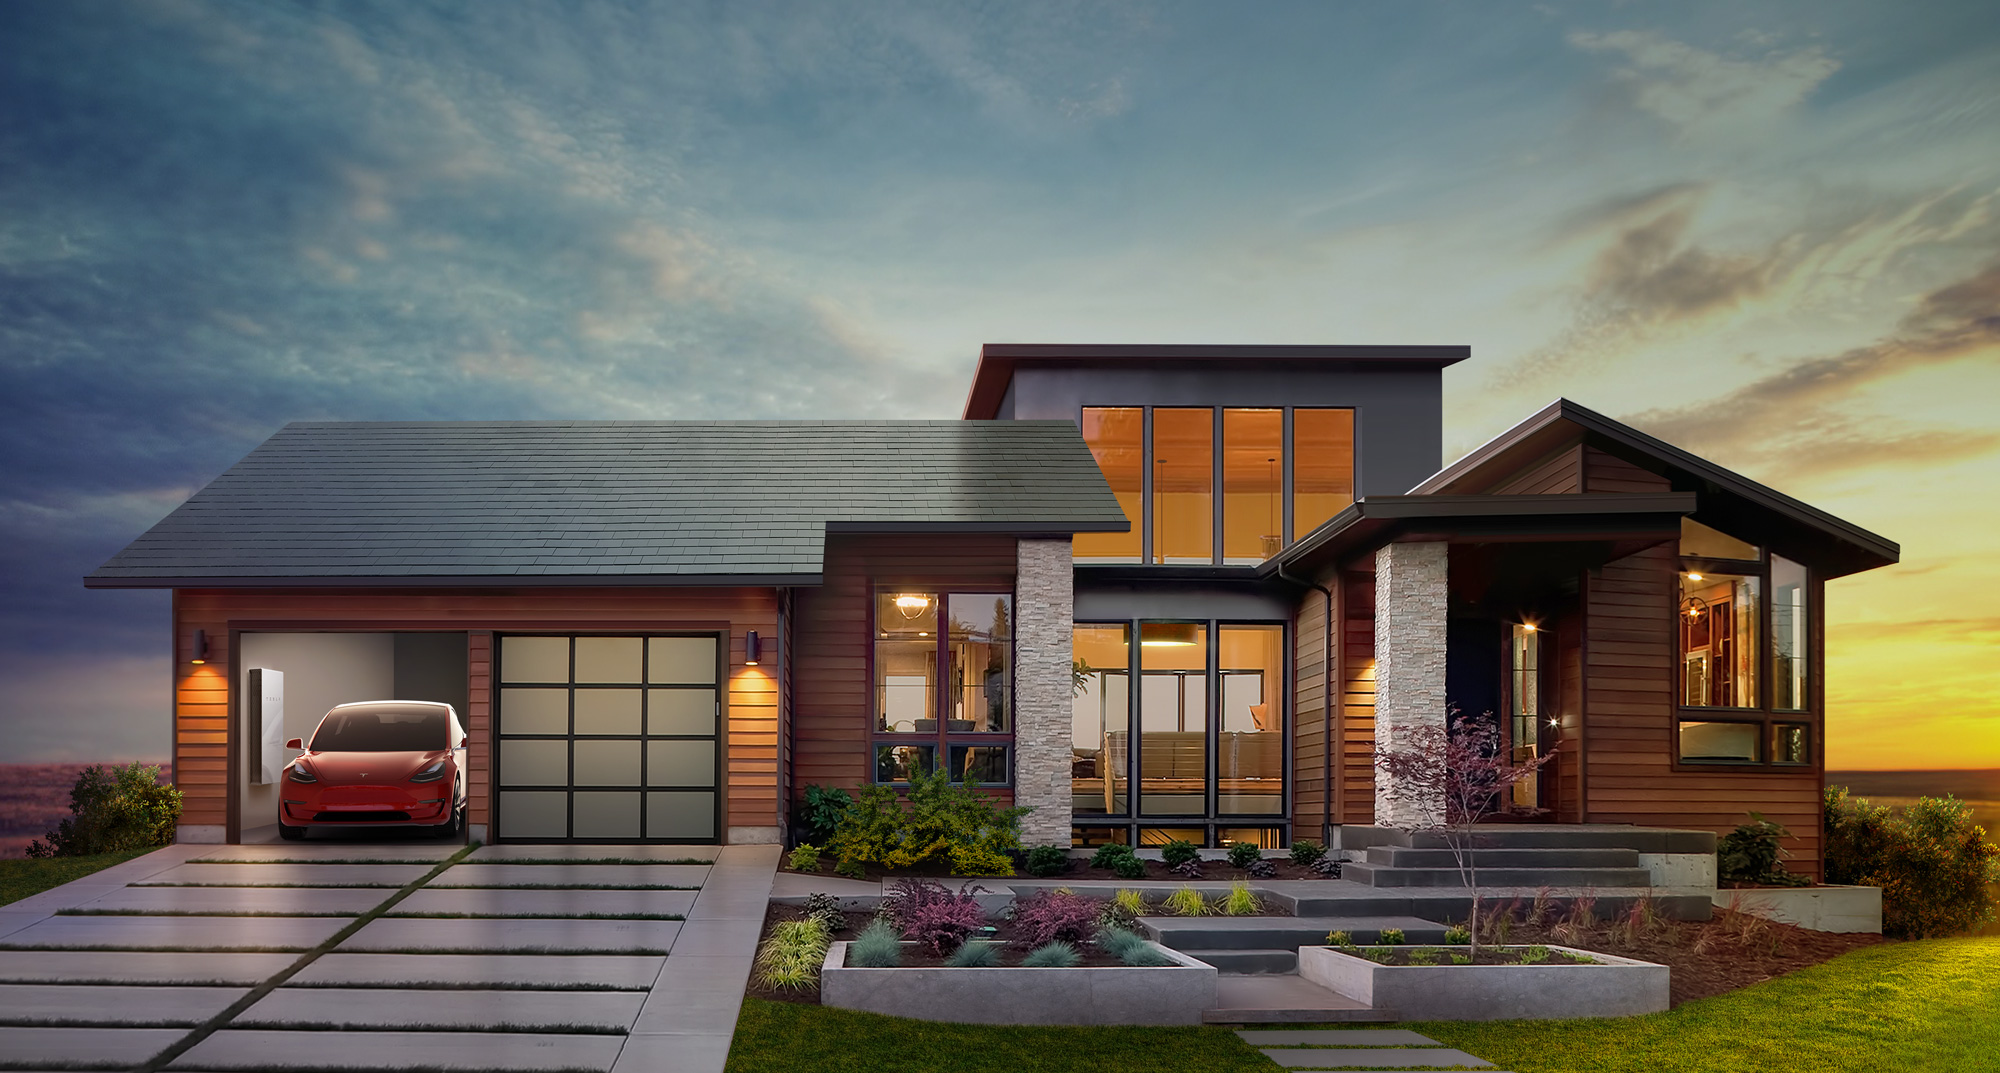 Tesla has slashed the price of its solar panels in an